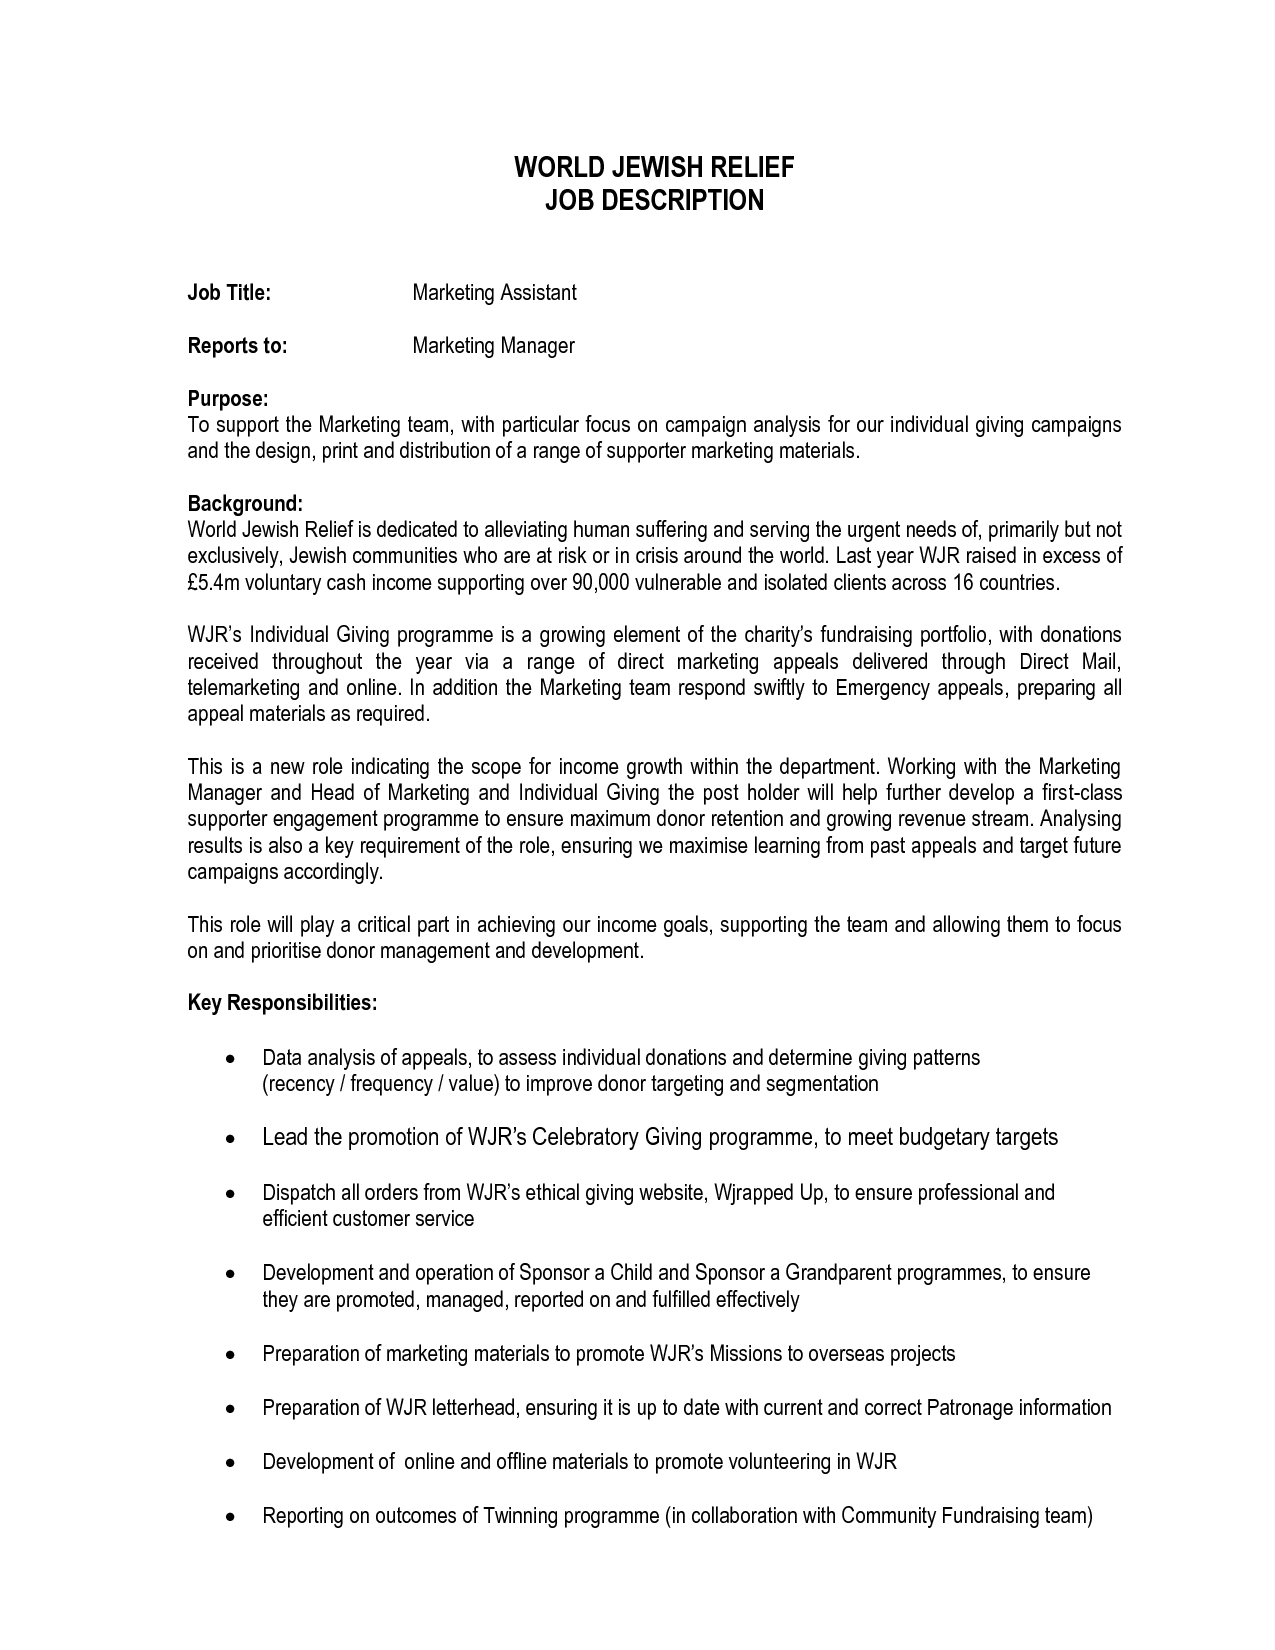 Sample Resume Marketing Position Buy Essays And Research